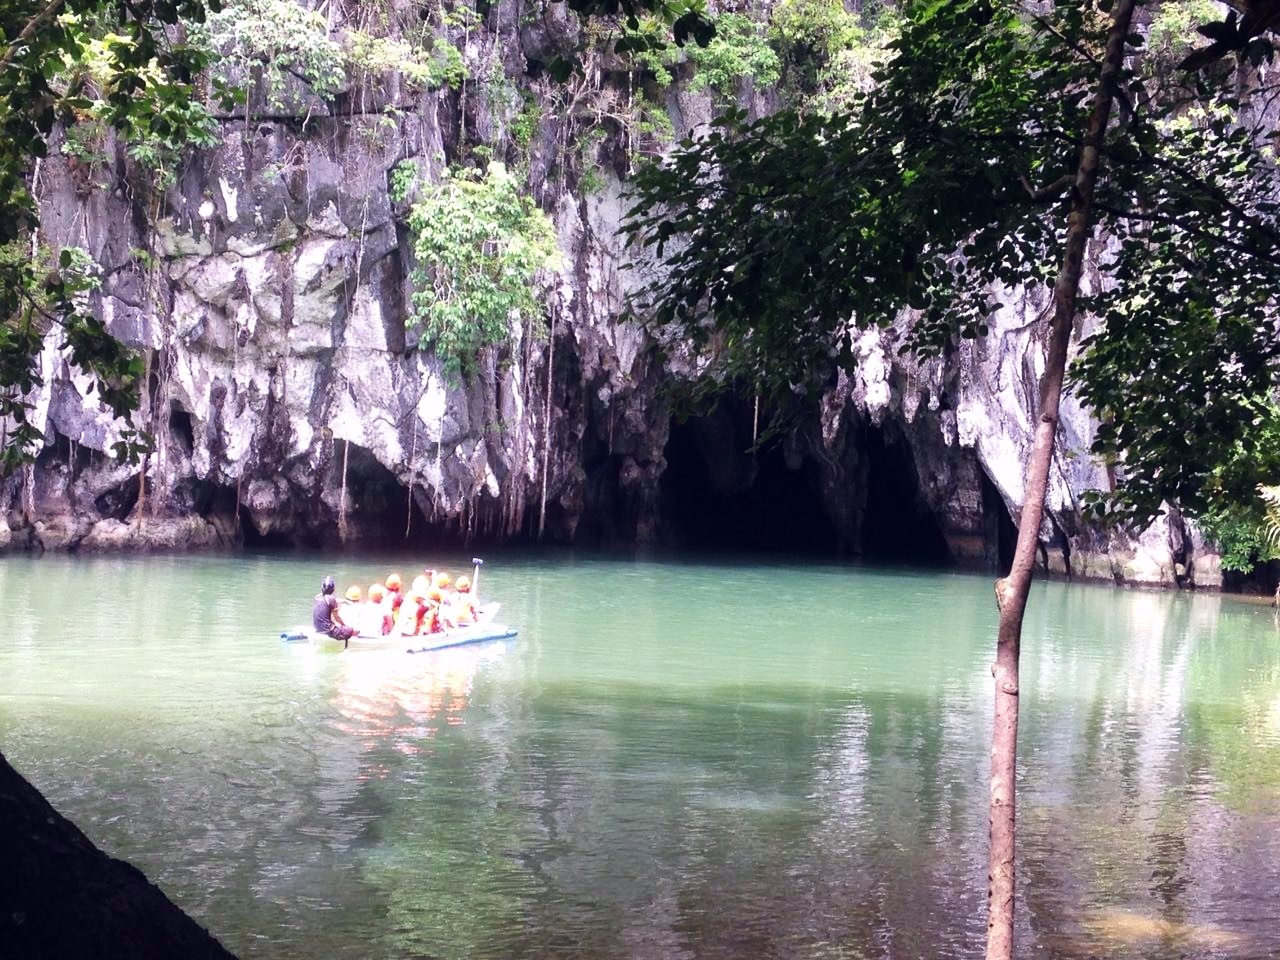 Backpacking in the Philippines – A Week in Palawan